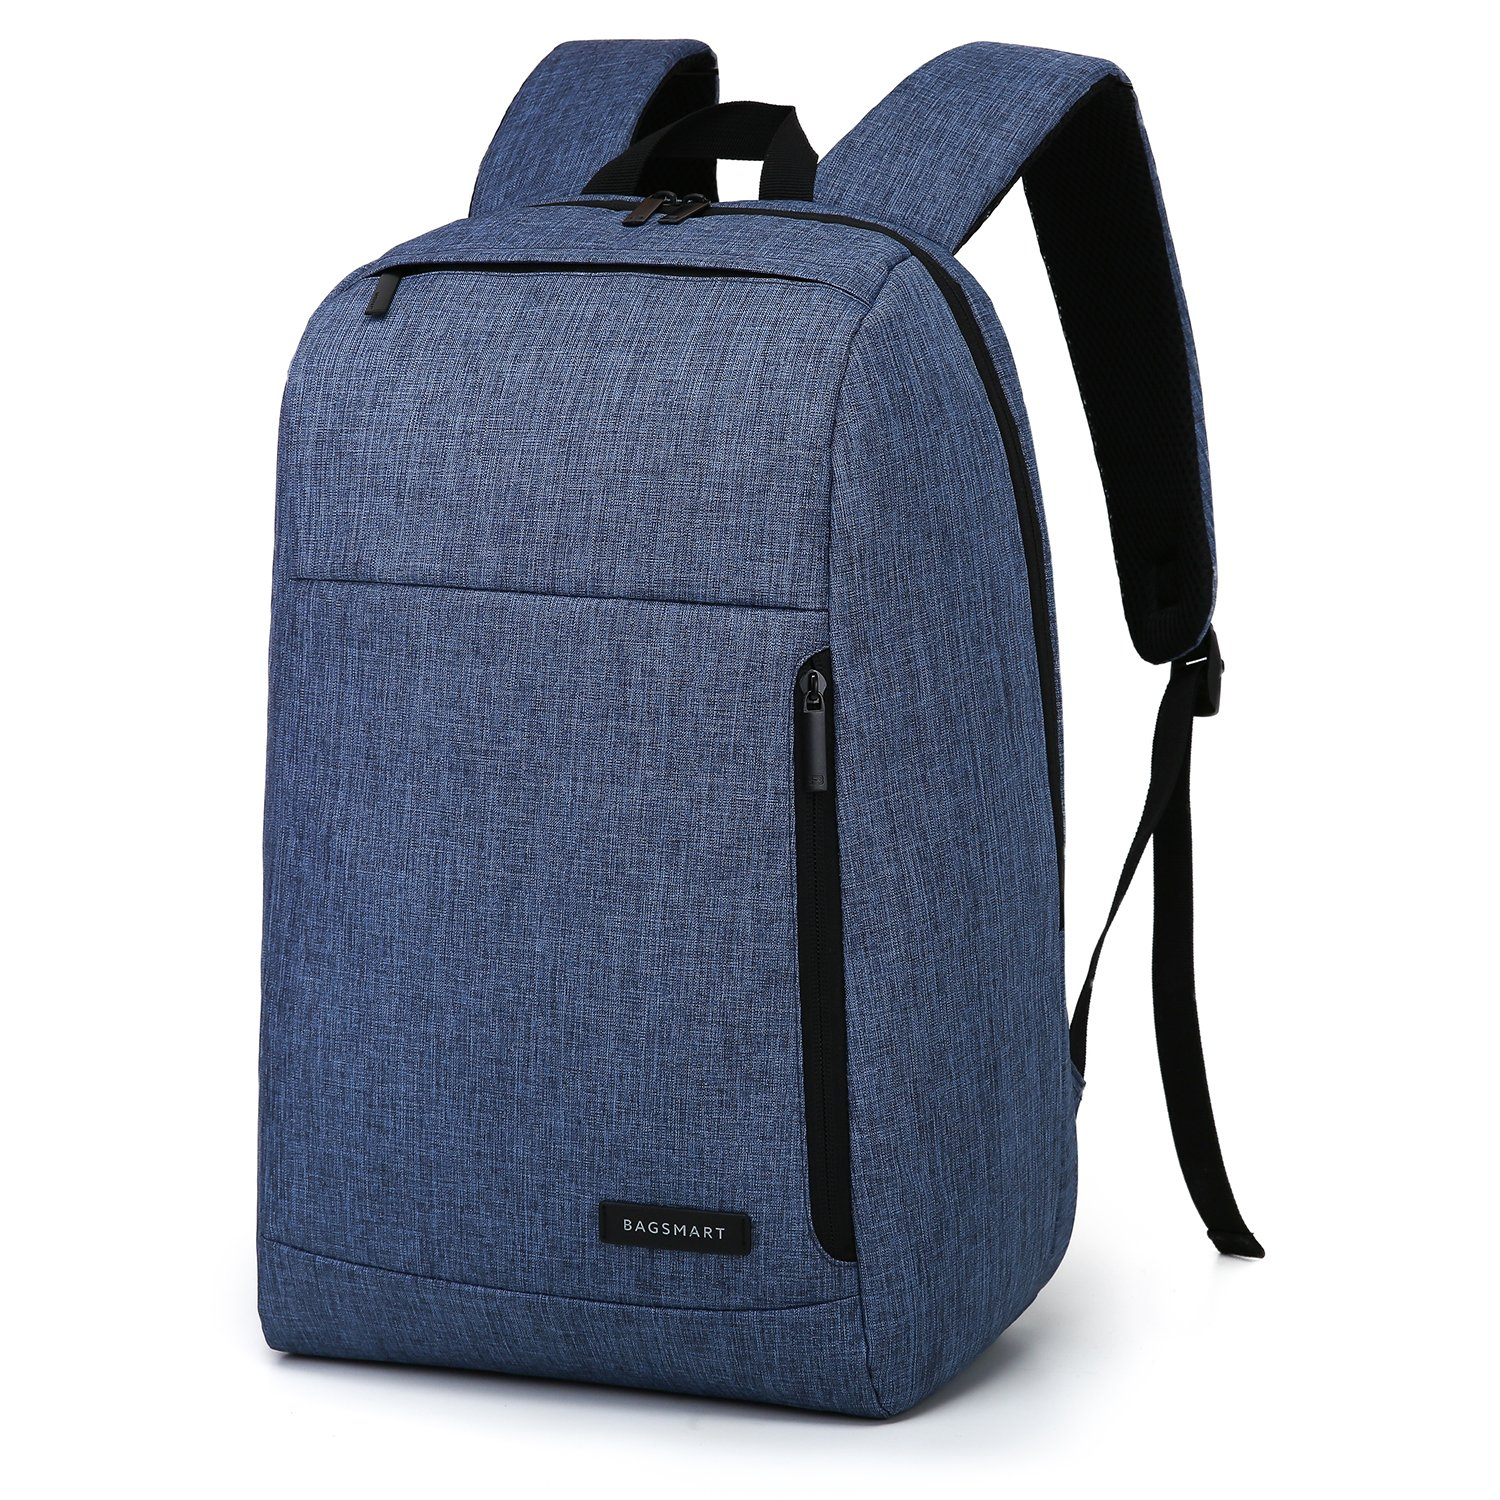 85%OFF BAGSMART Business Laptop Backpack Water Resistant Slim School Backpack Fits Up To15.6 Inch Laptops Notebook Tablets, Blue